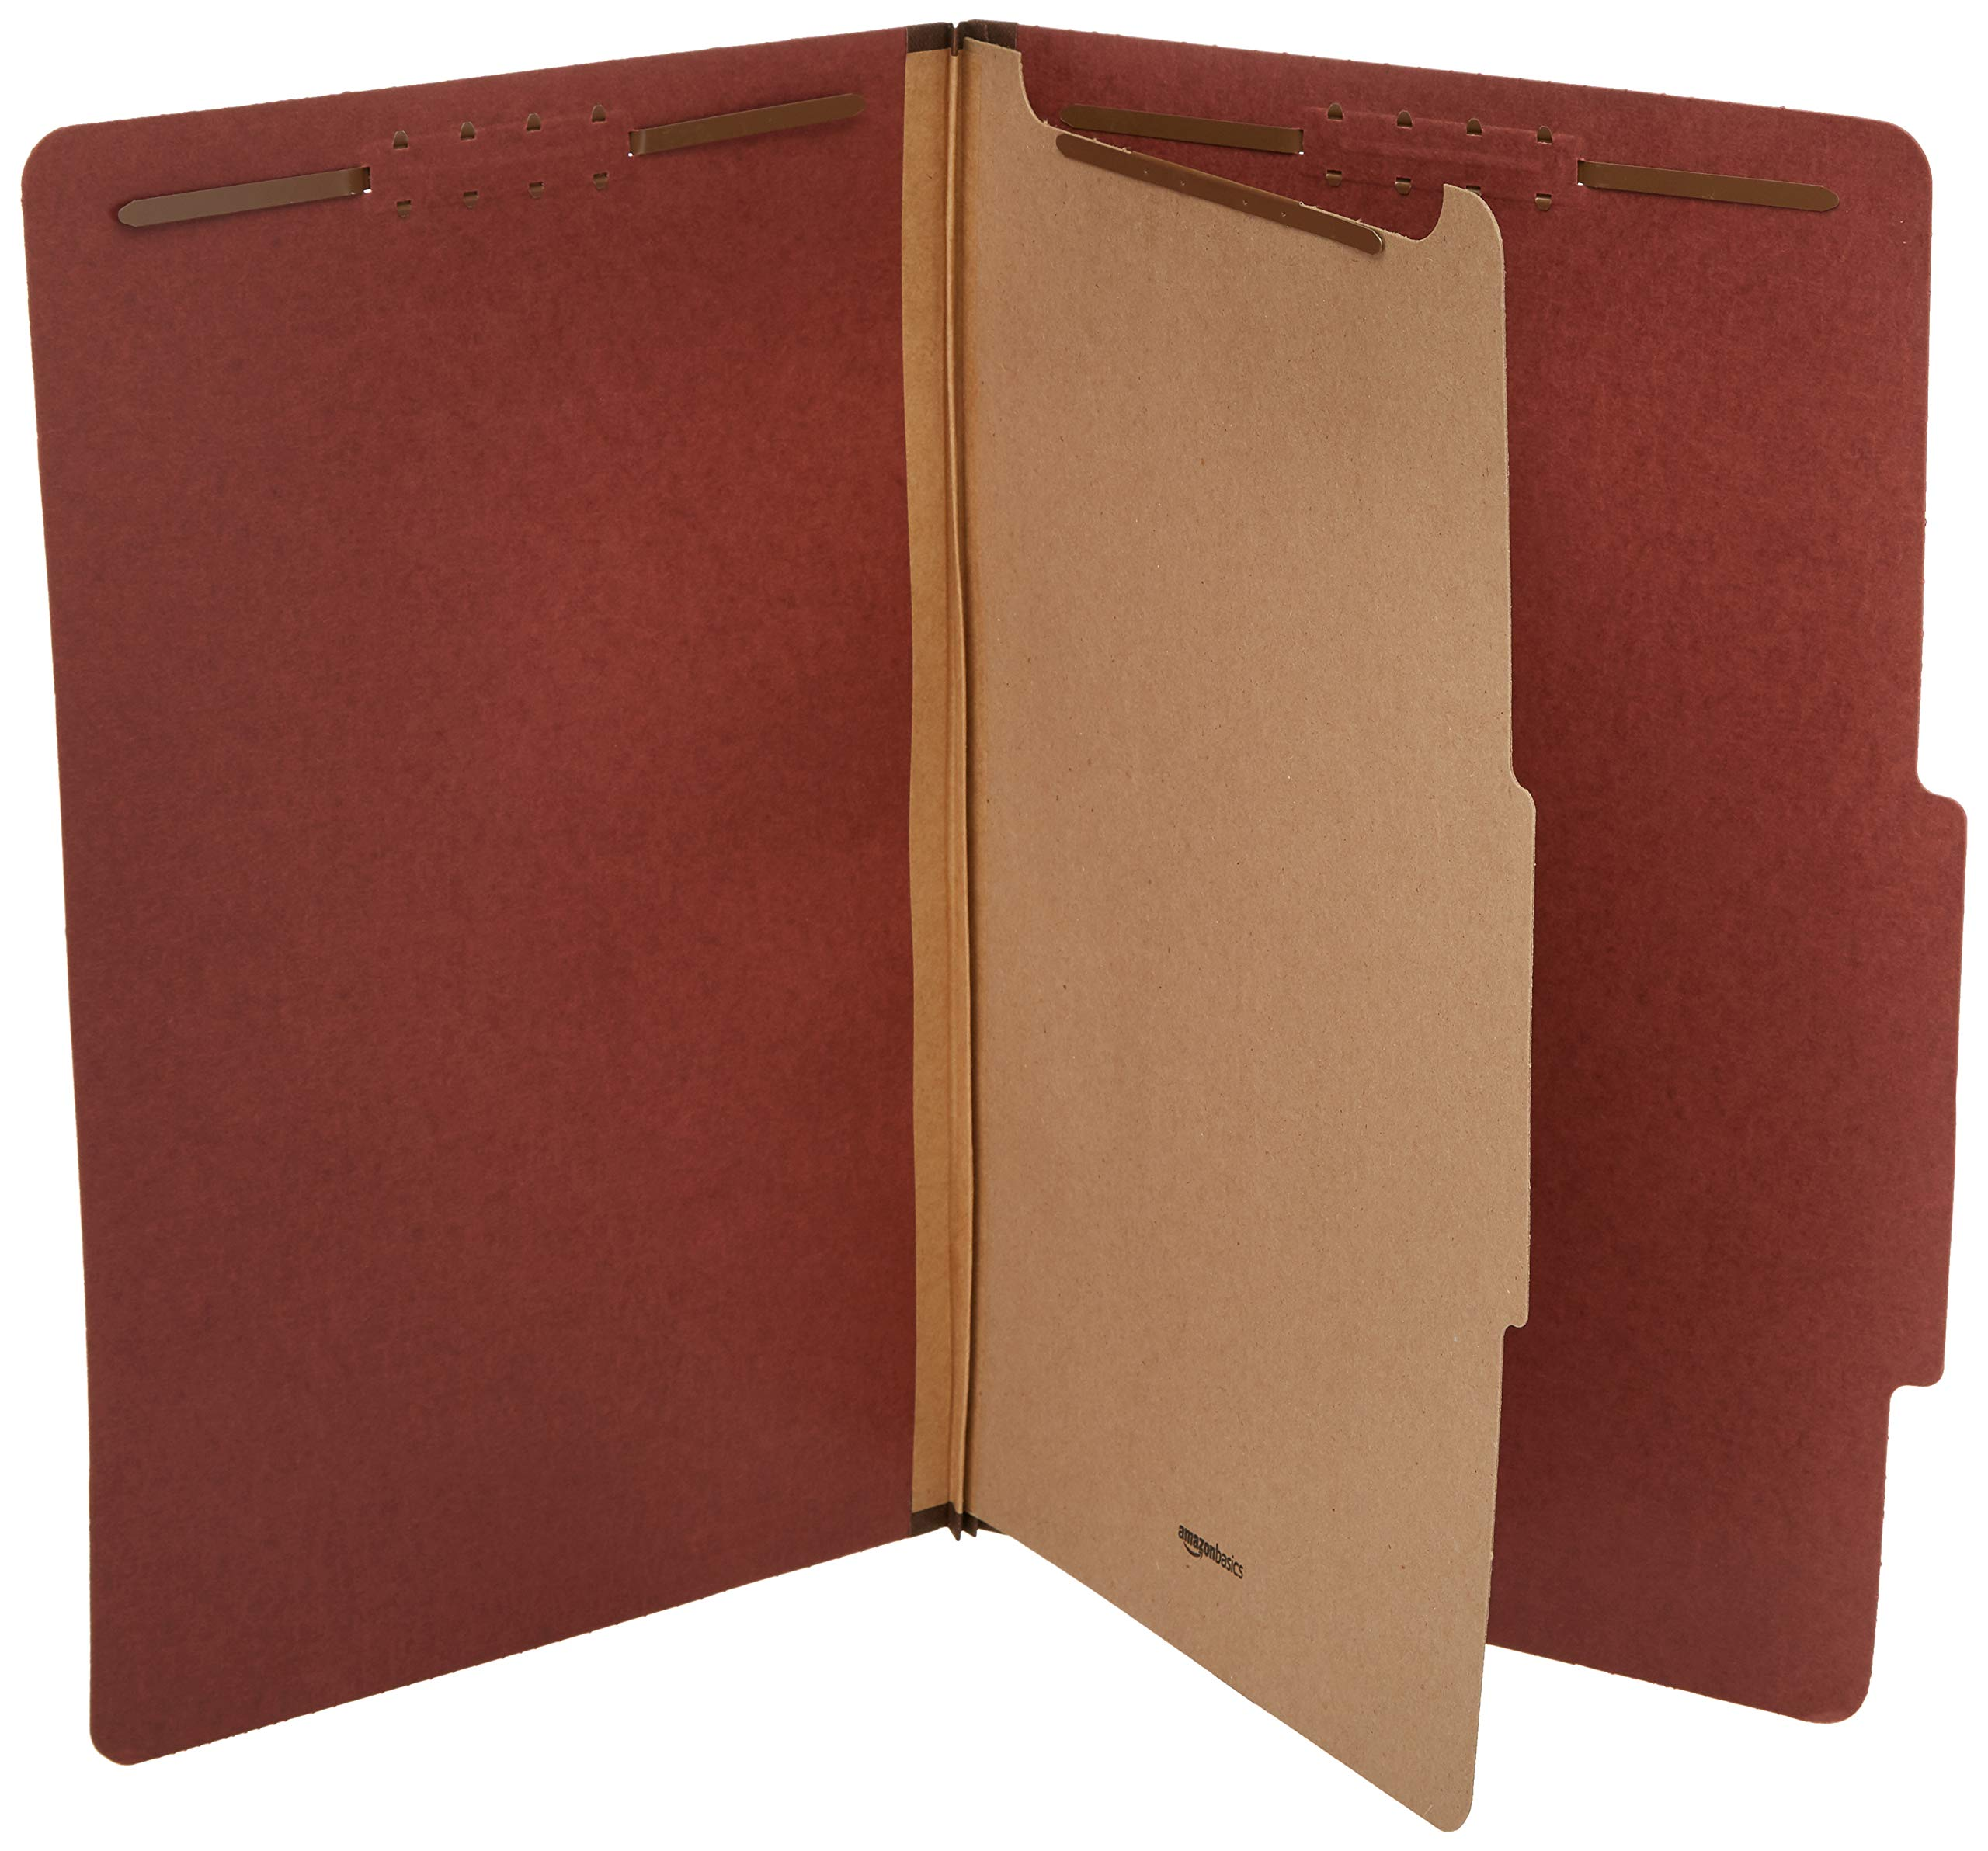 AmazonBasics Pressboard Classification File Folder with Fasteners, 1 Divider, 1.75 Inch Expansion, Legal Size, Red (10 Pack) by AmazonBasics